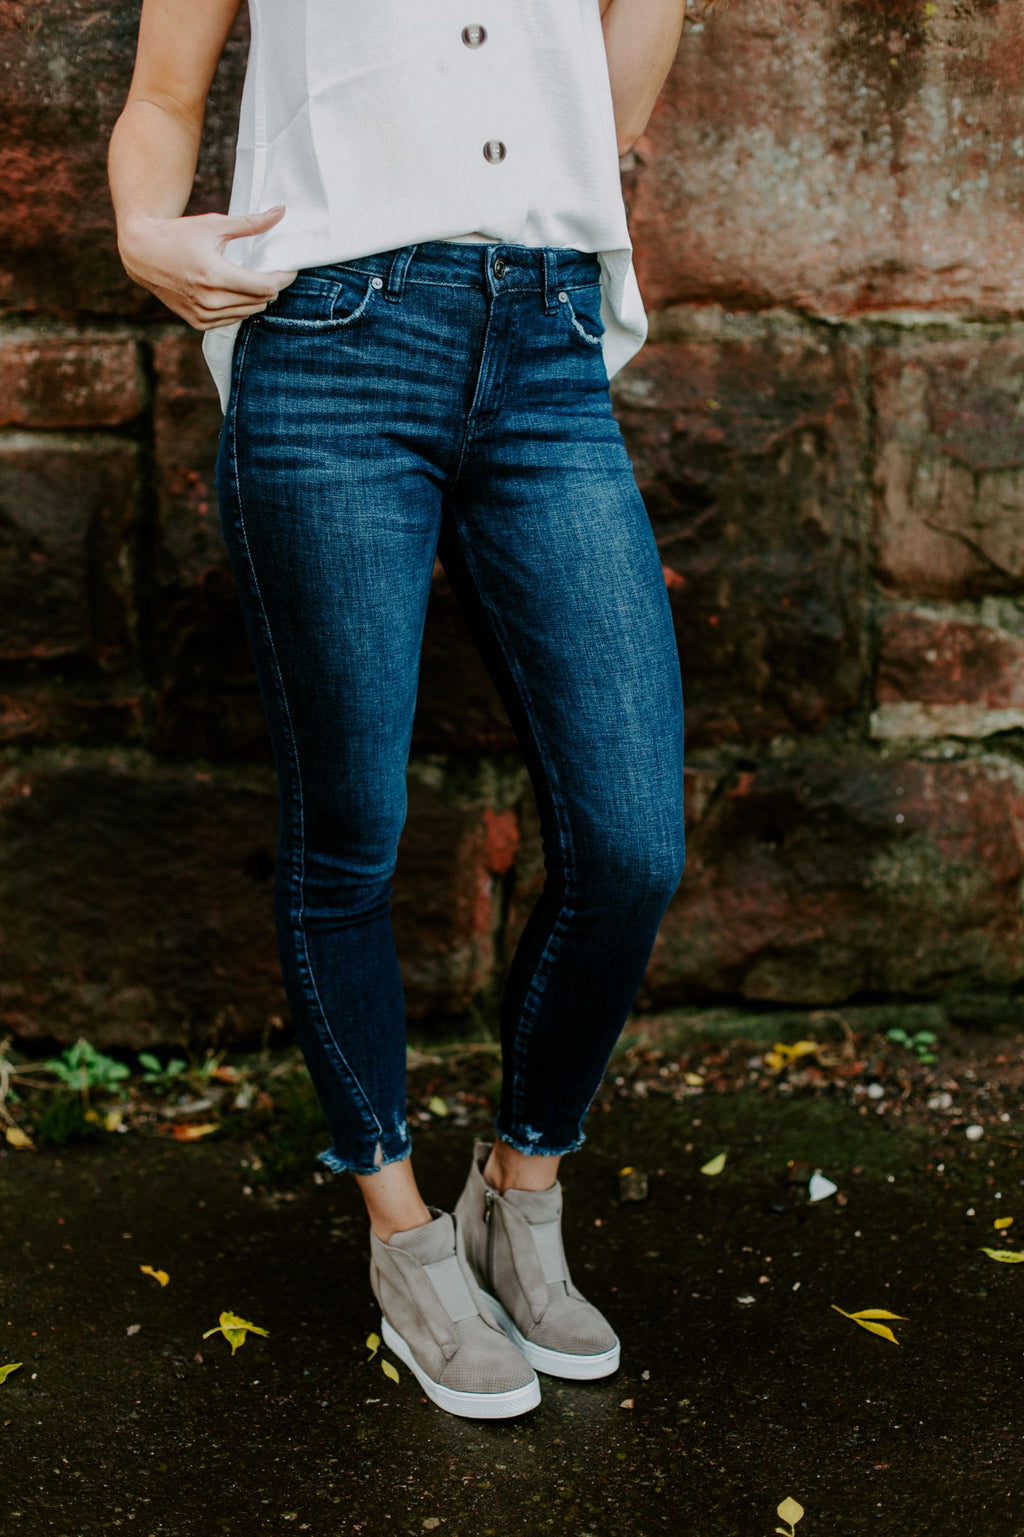 The Sydney High-Rise Jeans